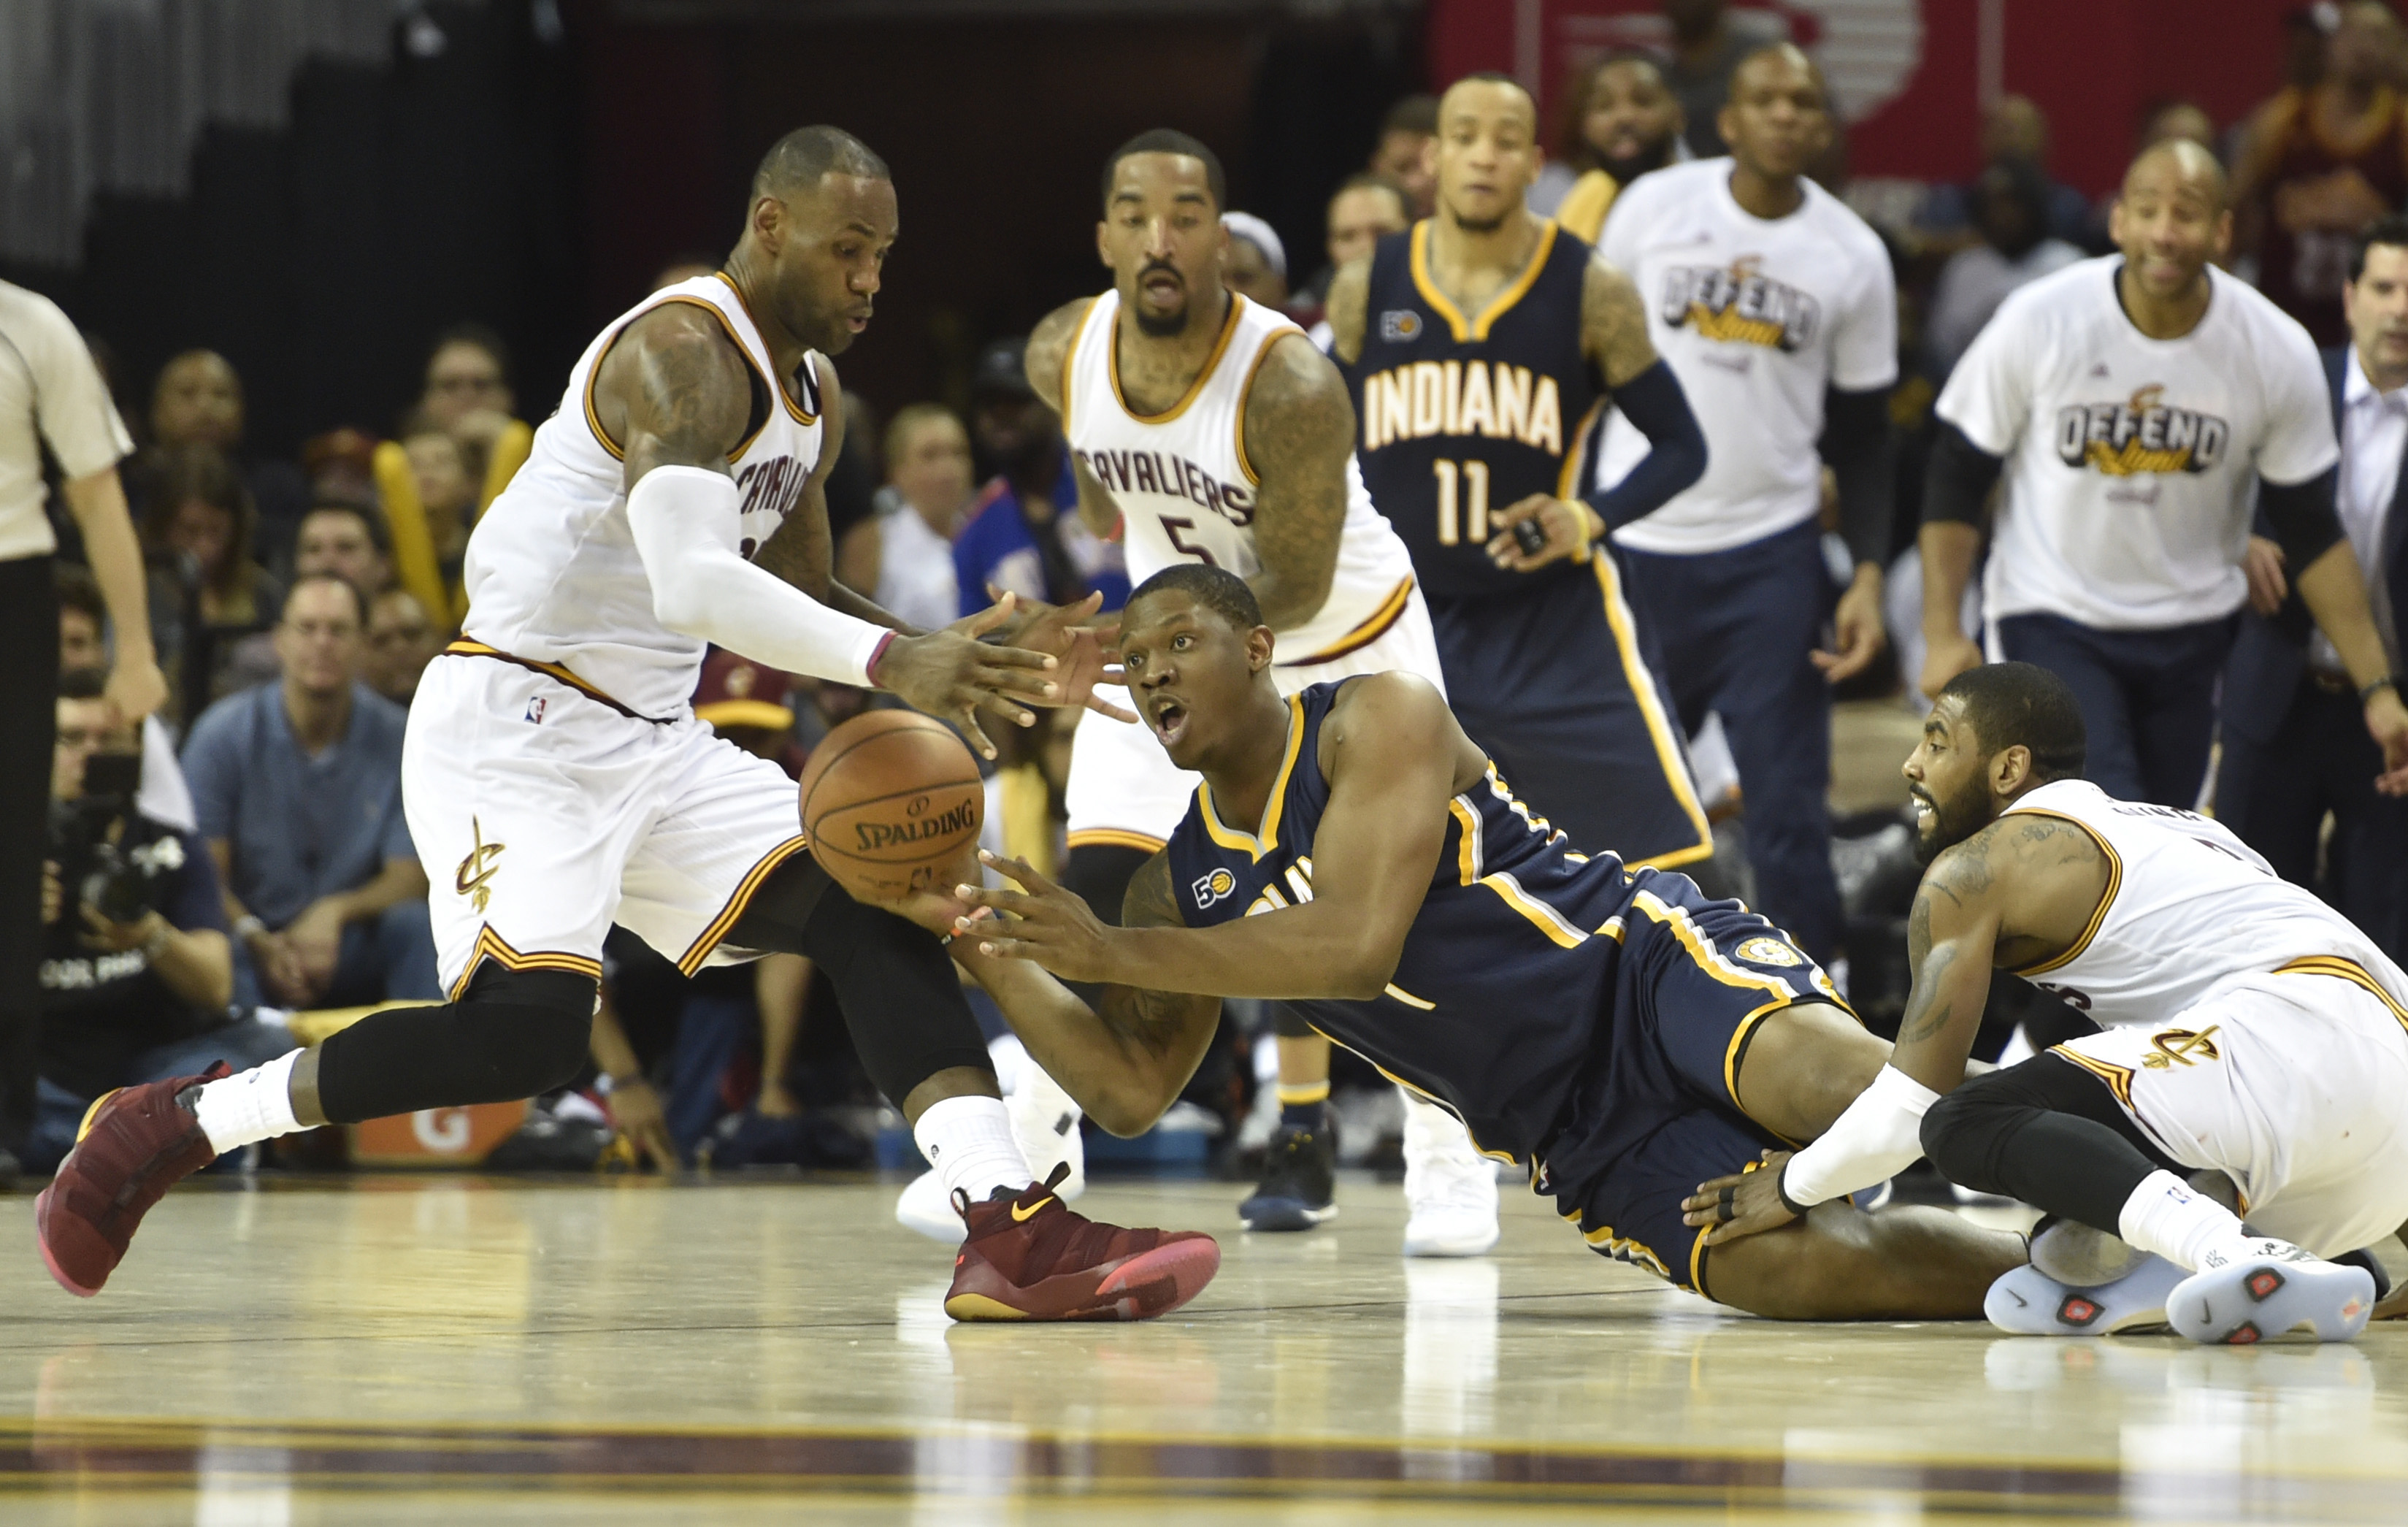 10014236-nba-playoffs-indiana-pacers-at-cleveland-cavaliers